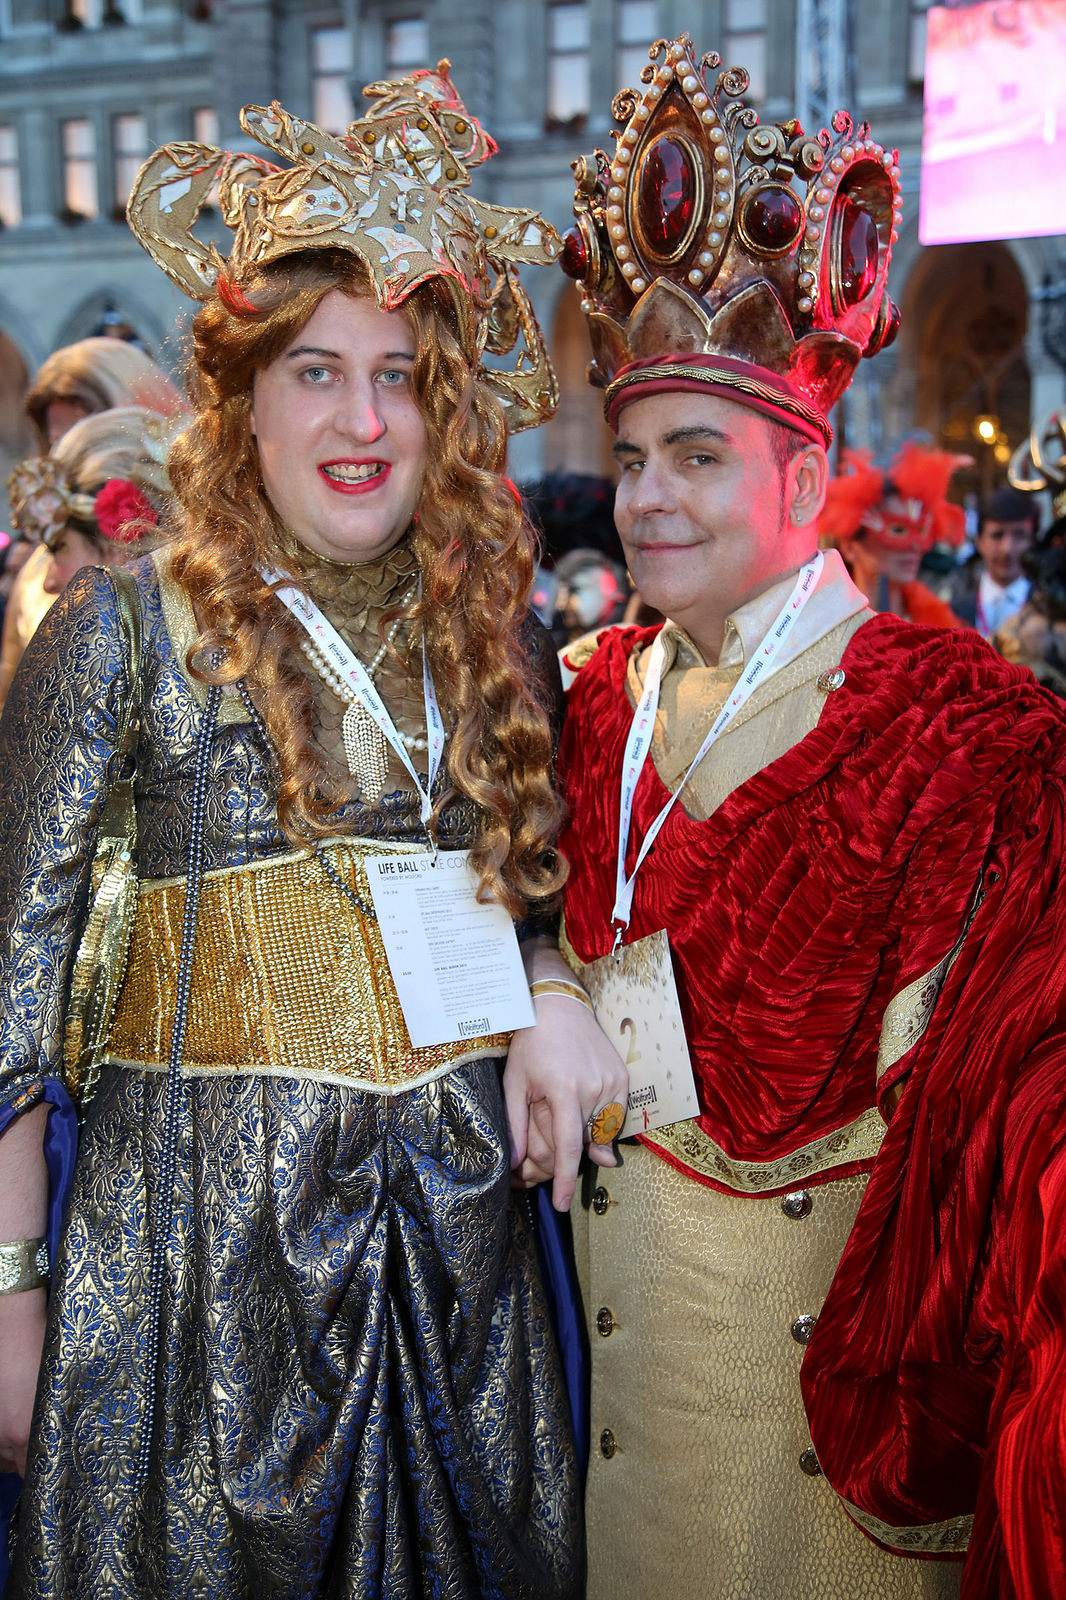 life ball22 Life Ball 2015 in Wien